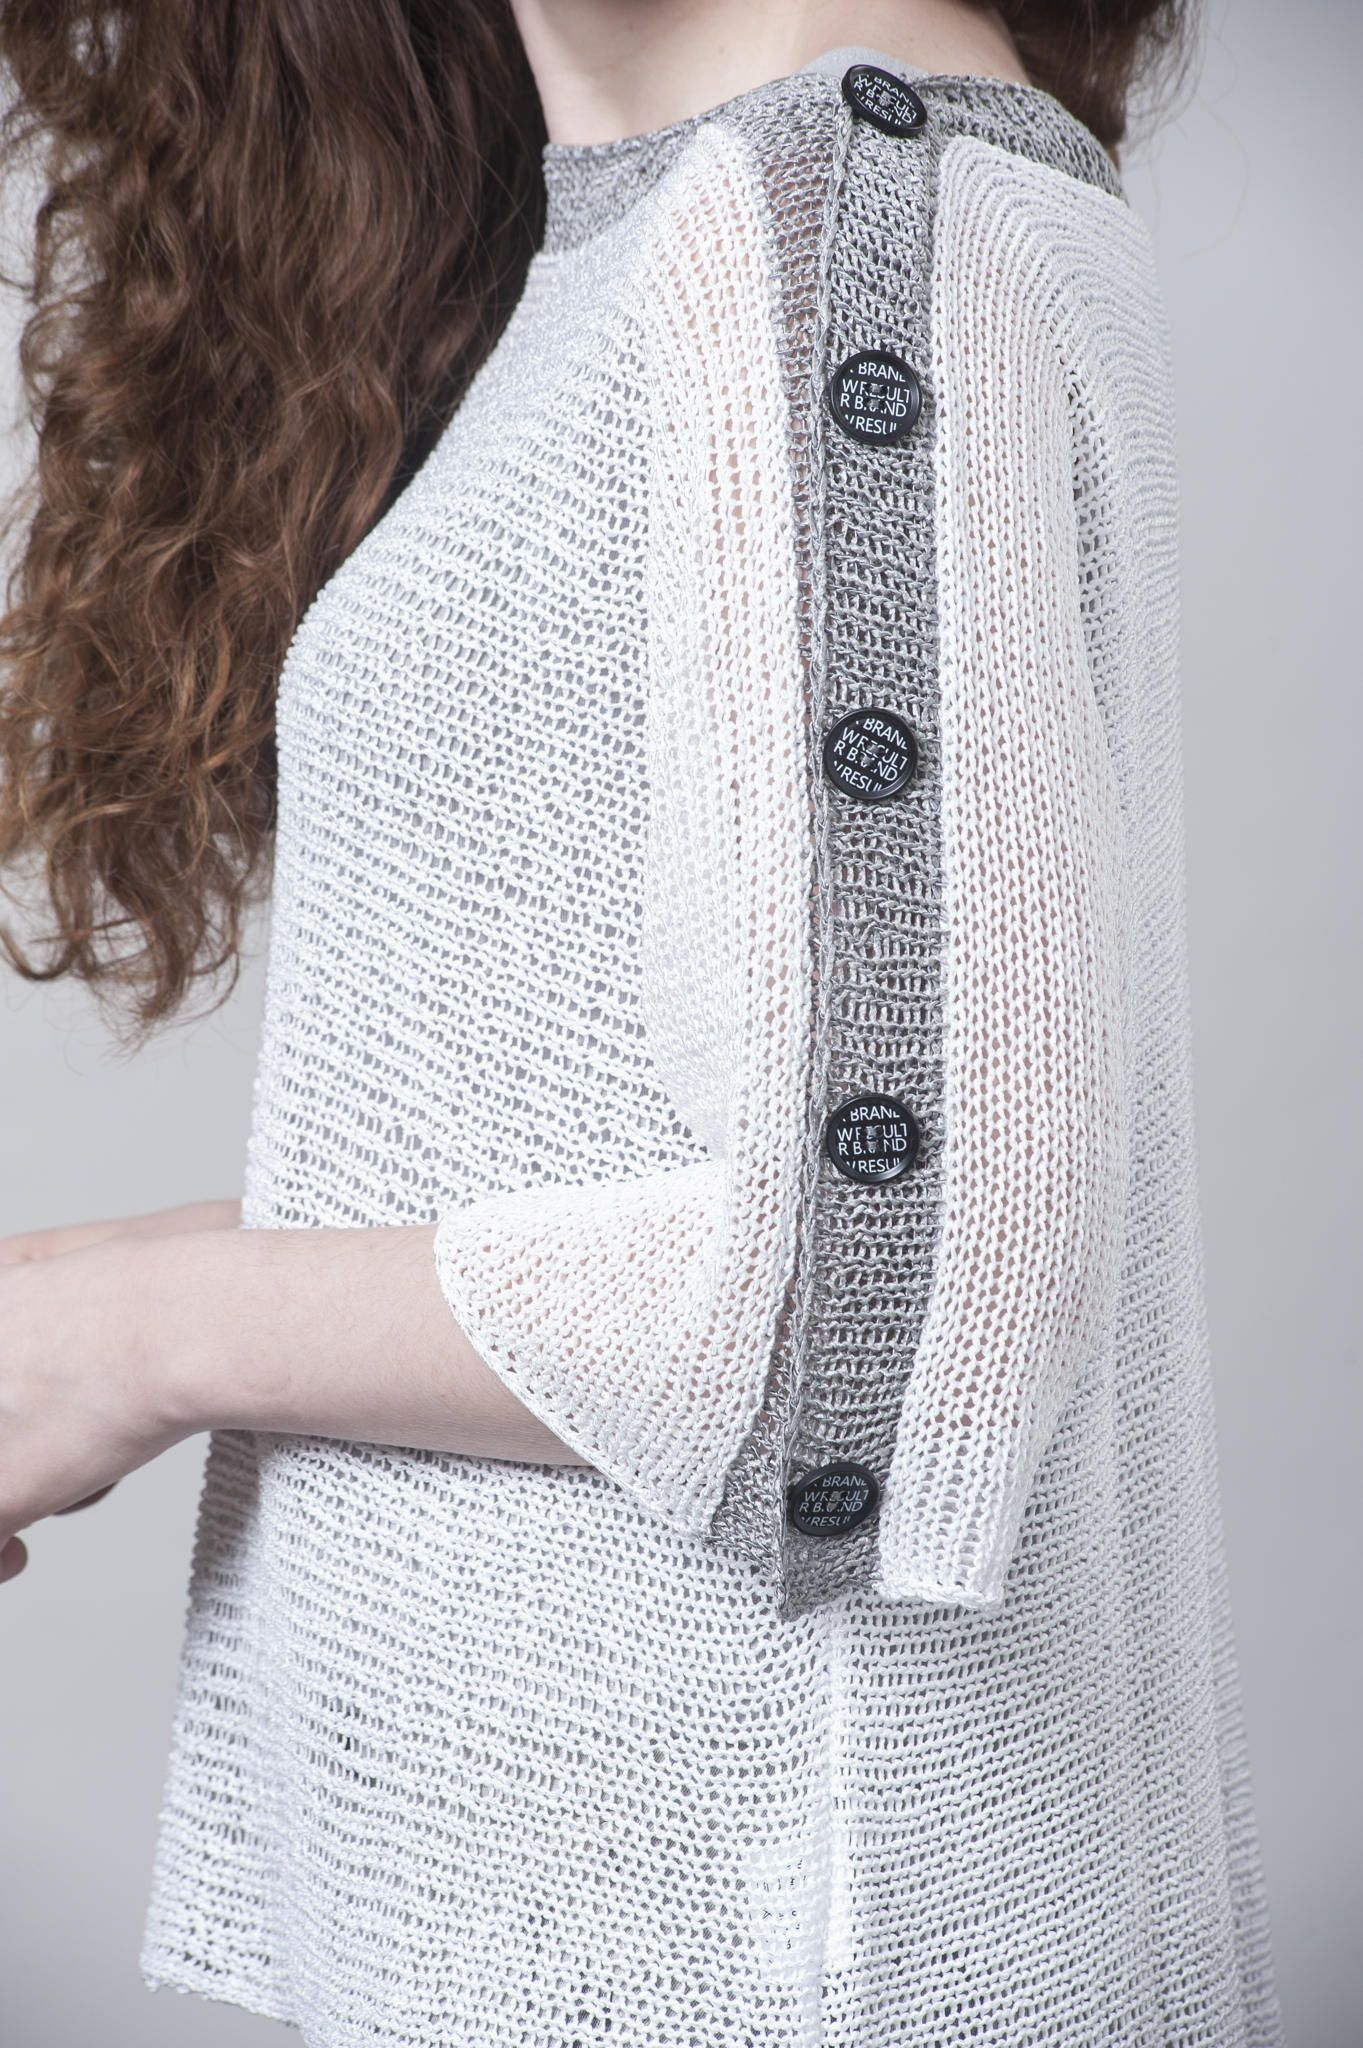 White  Grey Knit Sweater, Women Spring / Autumn Clothing, Fashion Summer Knit Top- Boho Style, Fits all seasons. Knitwear is not a seasonal item anymore. Lightweight and breathable our knitwear will fit easily into any wardrobe. Comfortable, easy to wear, and convertible – our womens